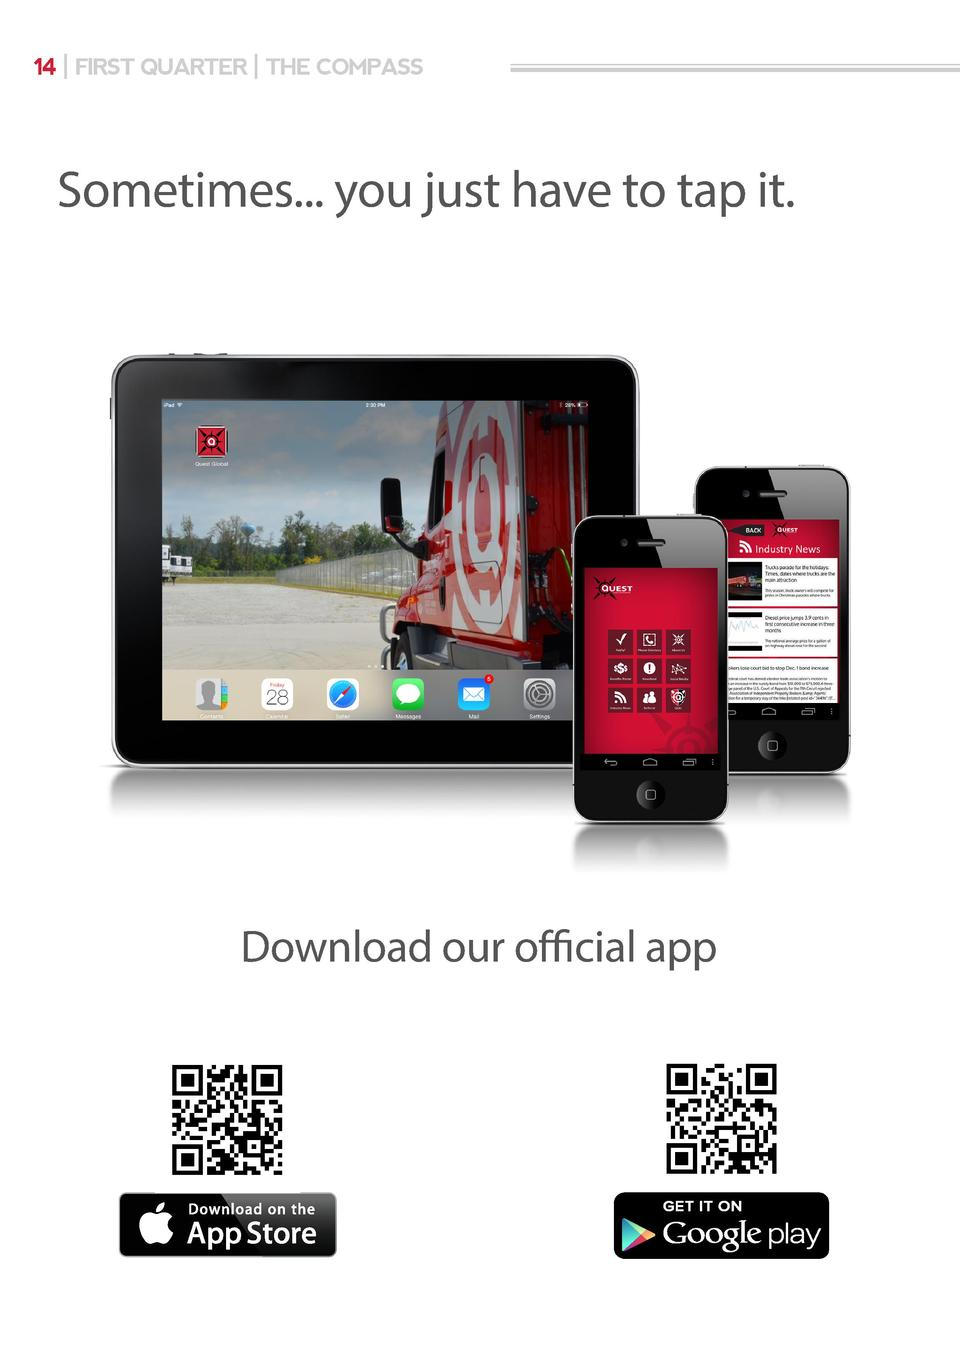 14   FIRST QUARTER   THE COMPASS  Sometimes... you just have to tap it.  Download our official app